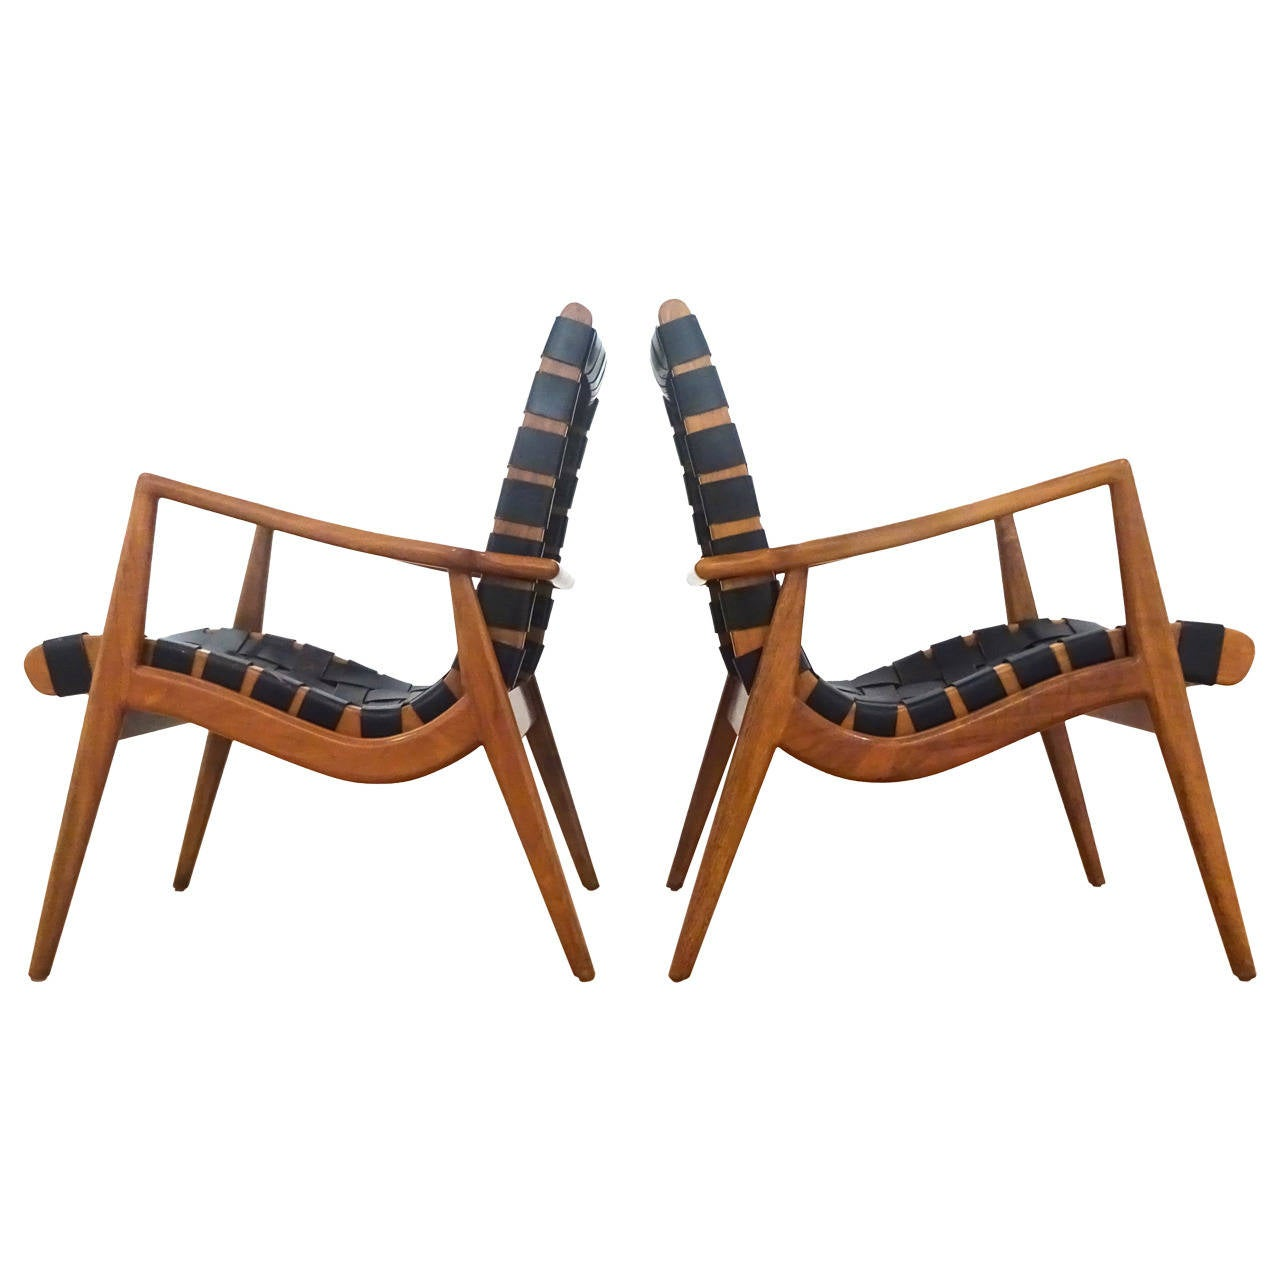 Sculptural Pair of 1950s Mel Smilow Walnut and Leather Lounge Chairs